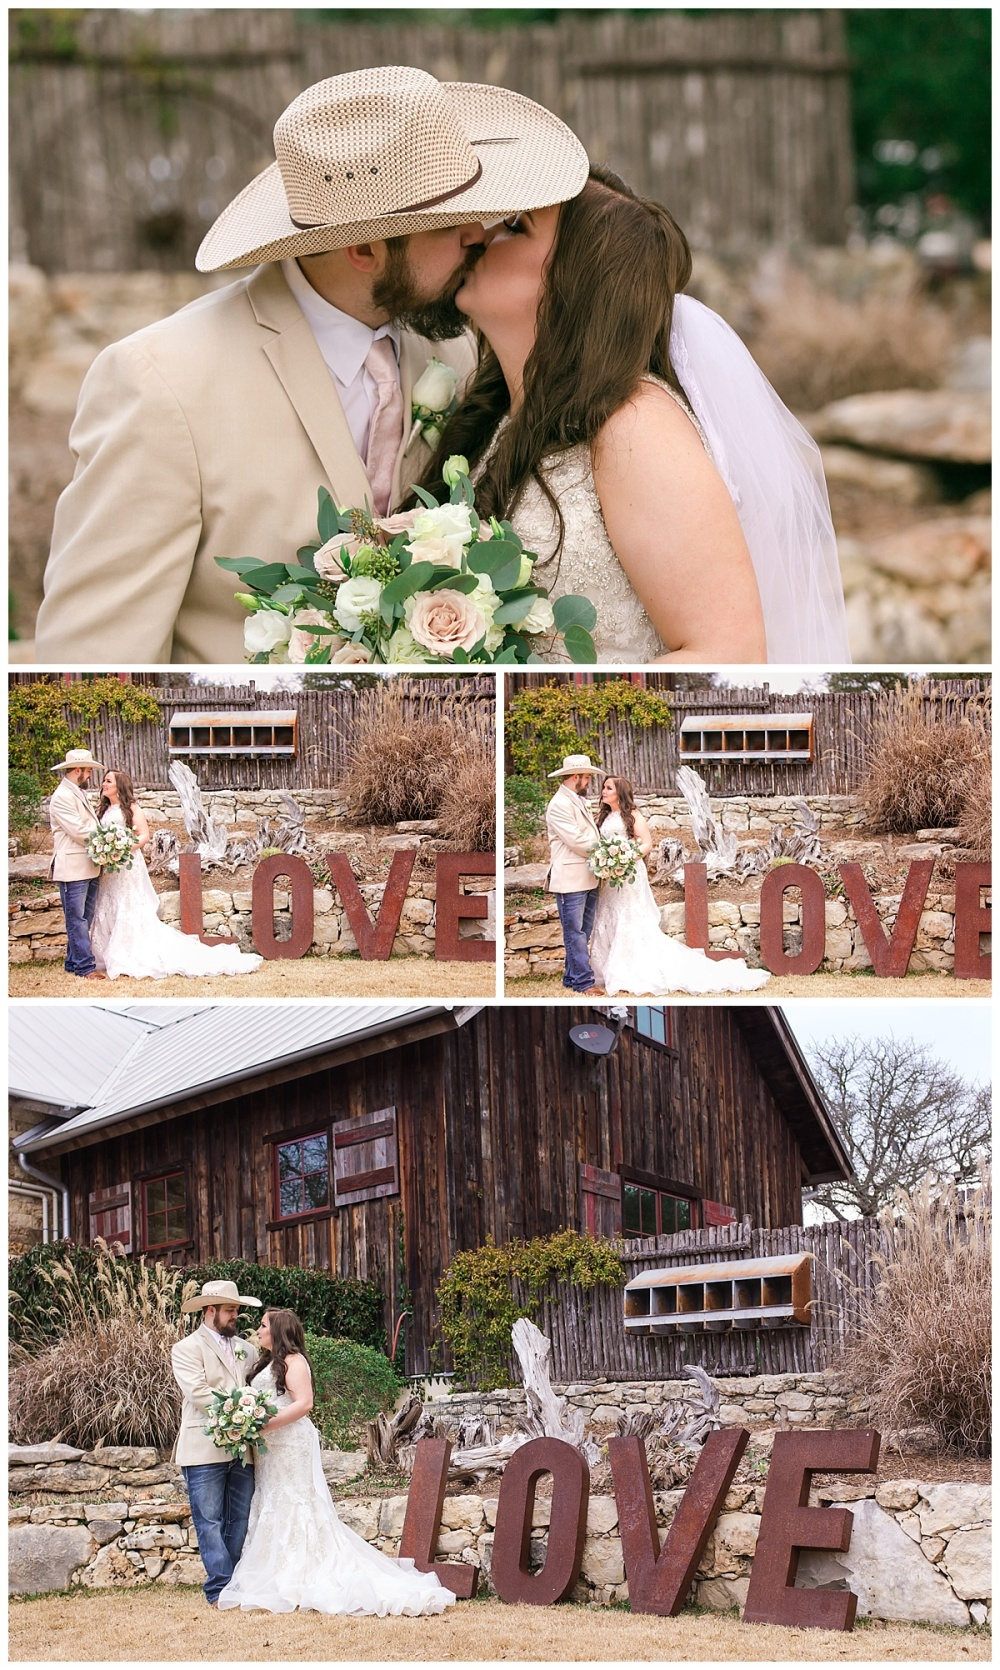 Carly-Barton-Photography-Branded-T-Ranch-Kendalia-Texas-Hill-Country-Wedding_0038.jpg